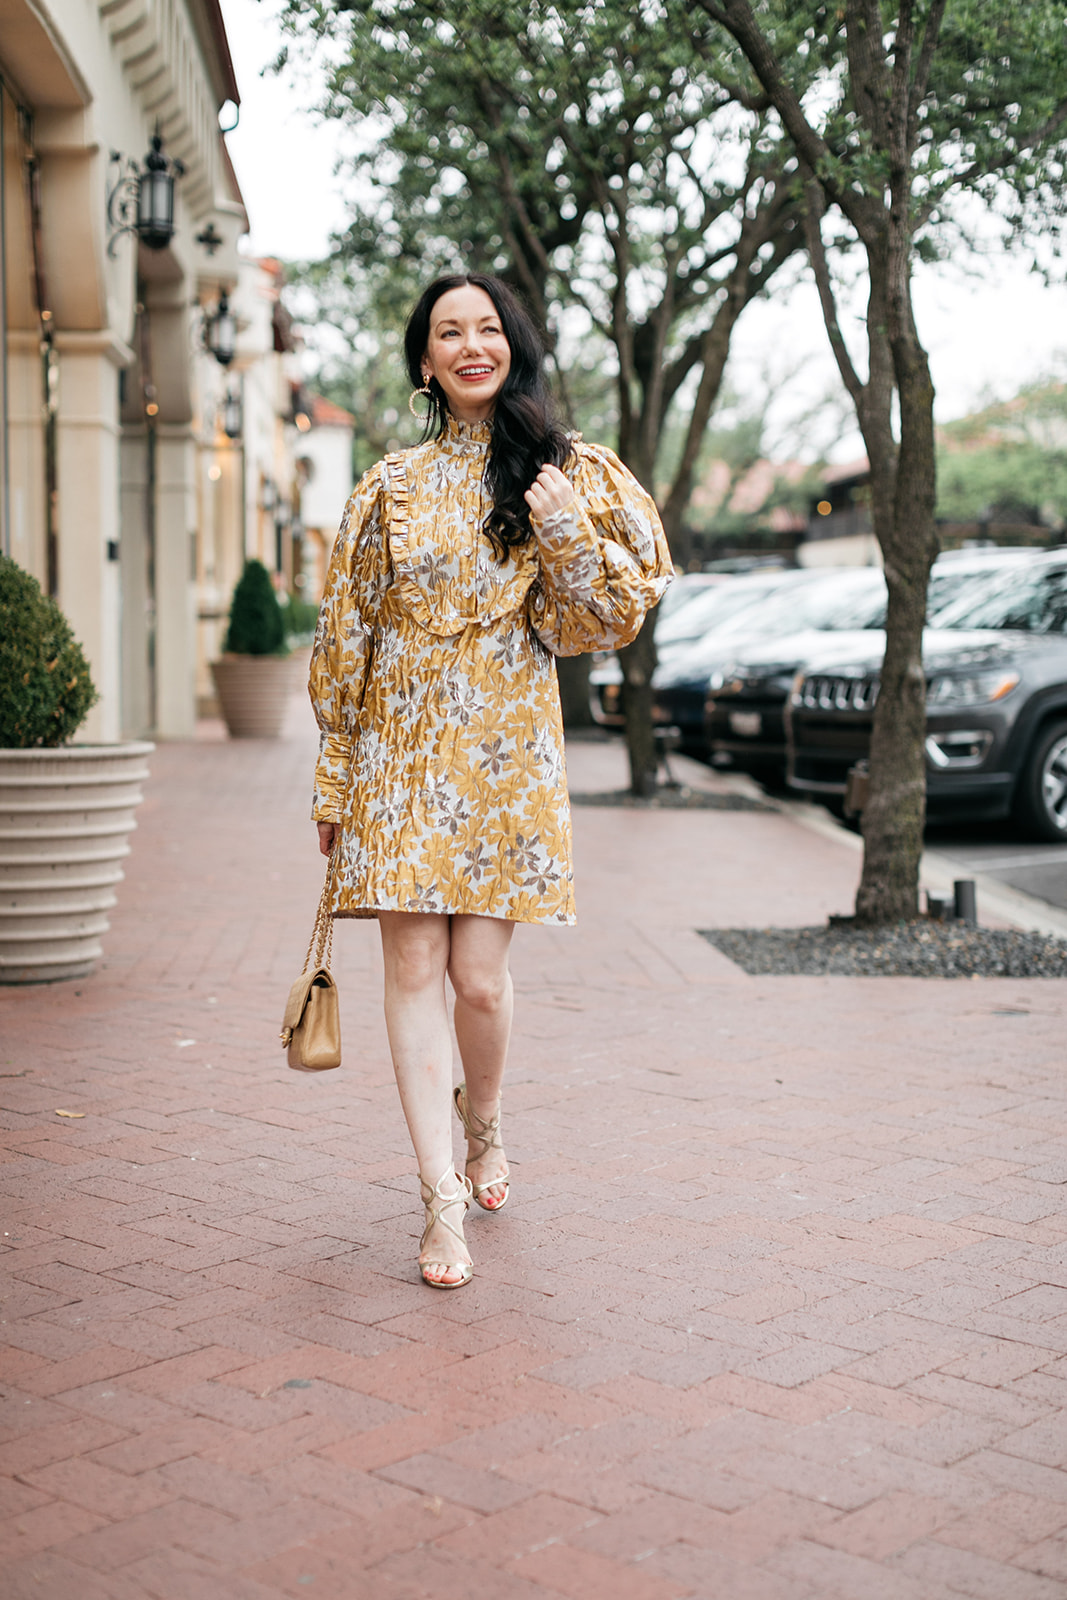 The Return of the Cocktail Dress